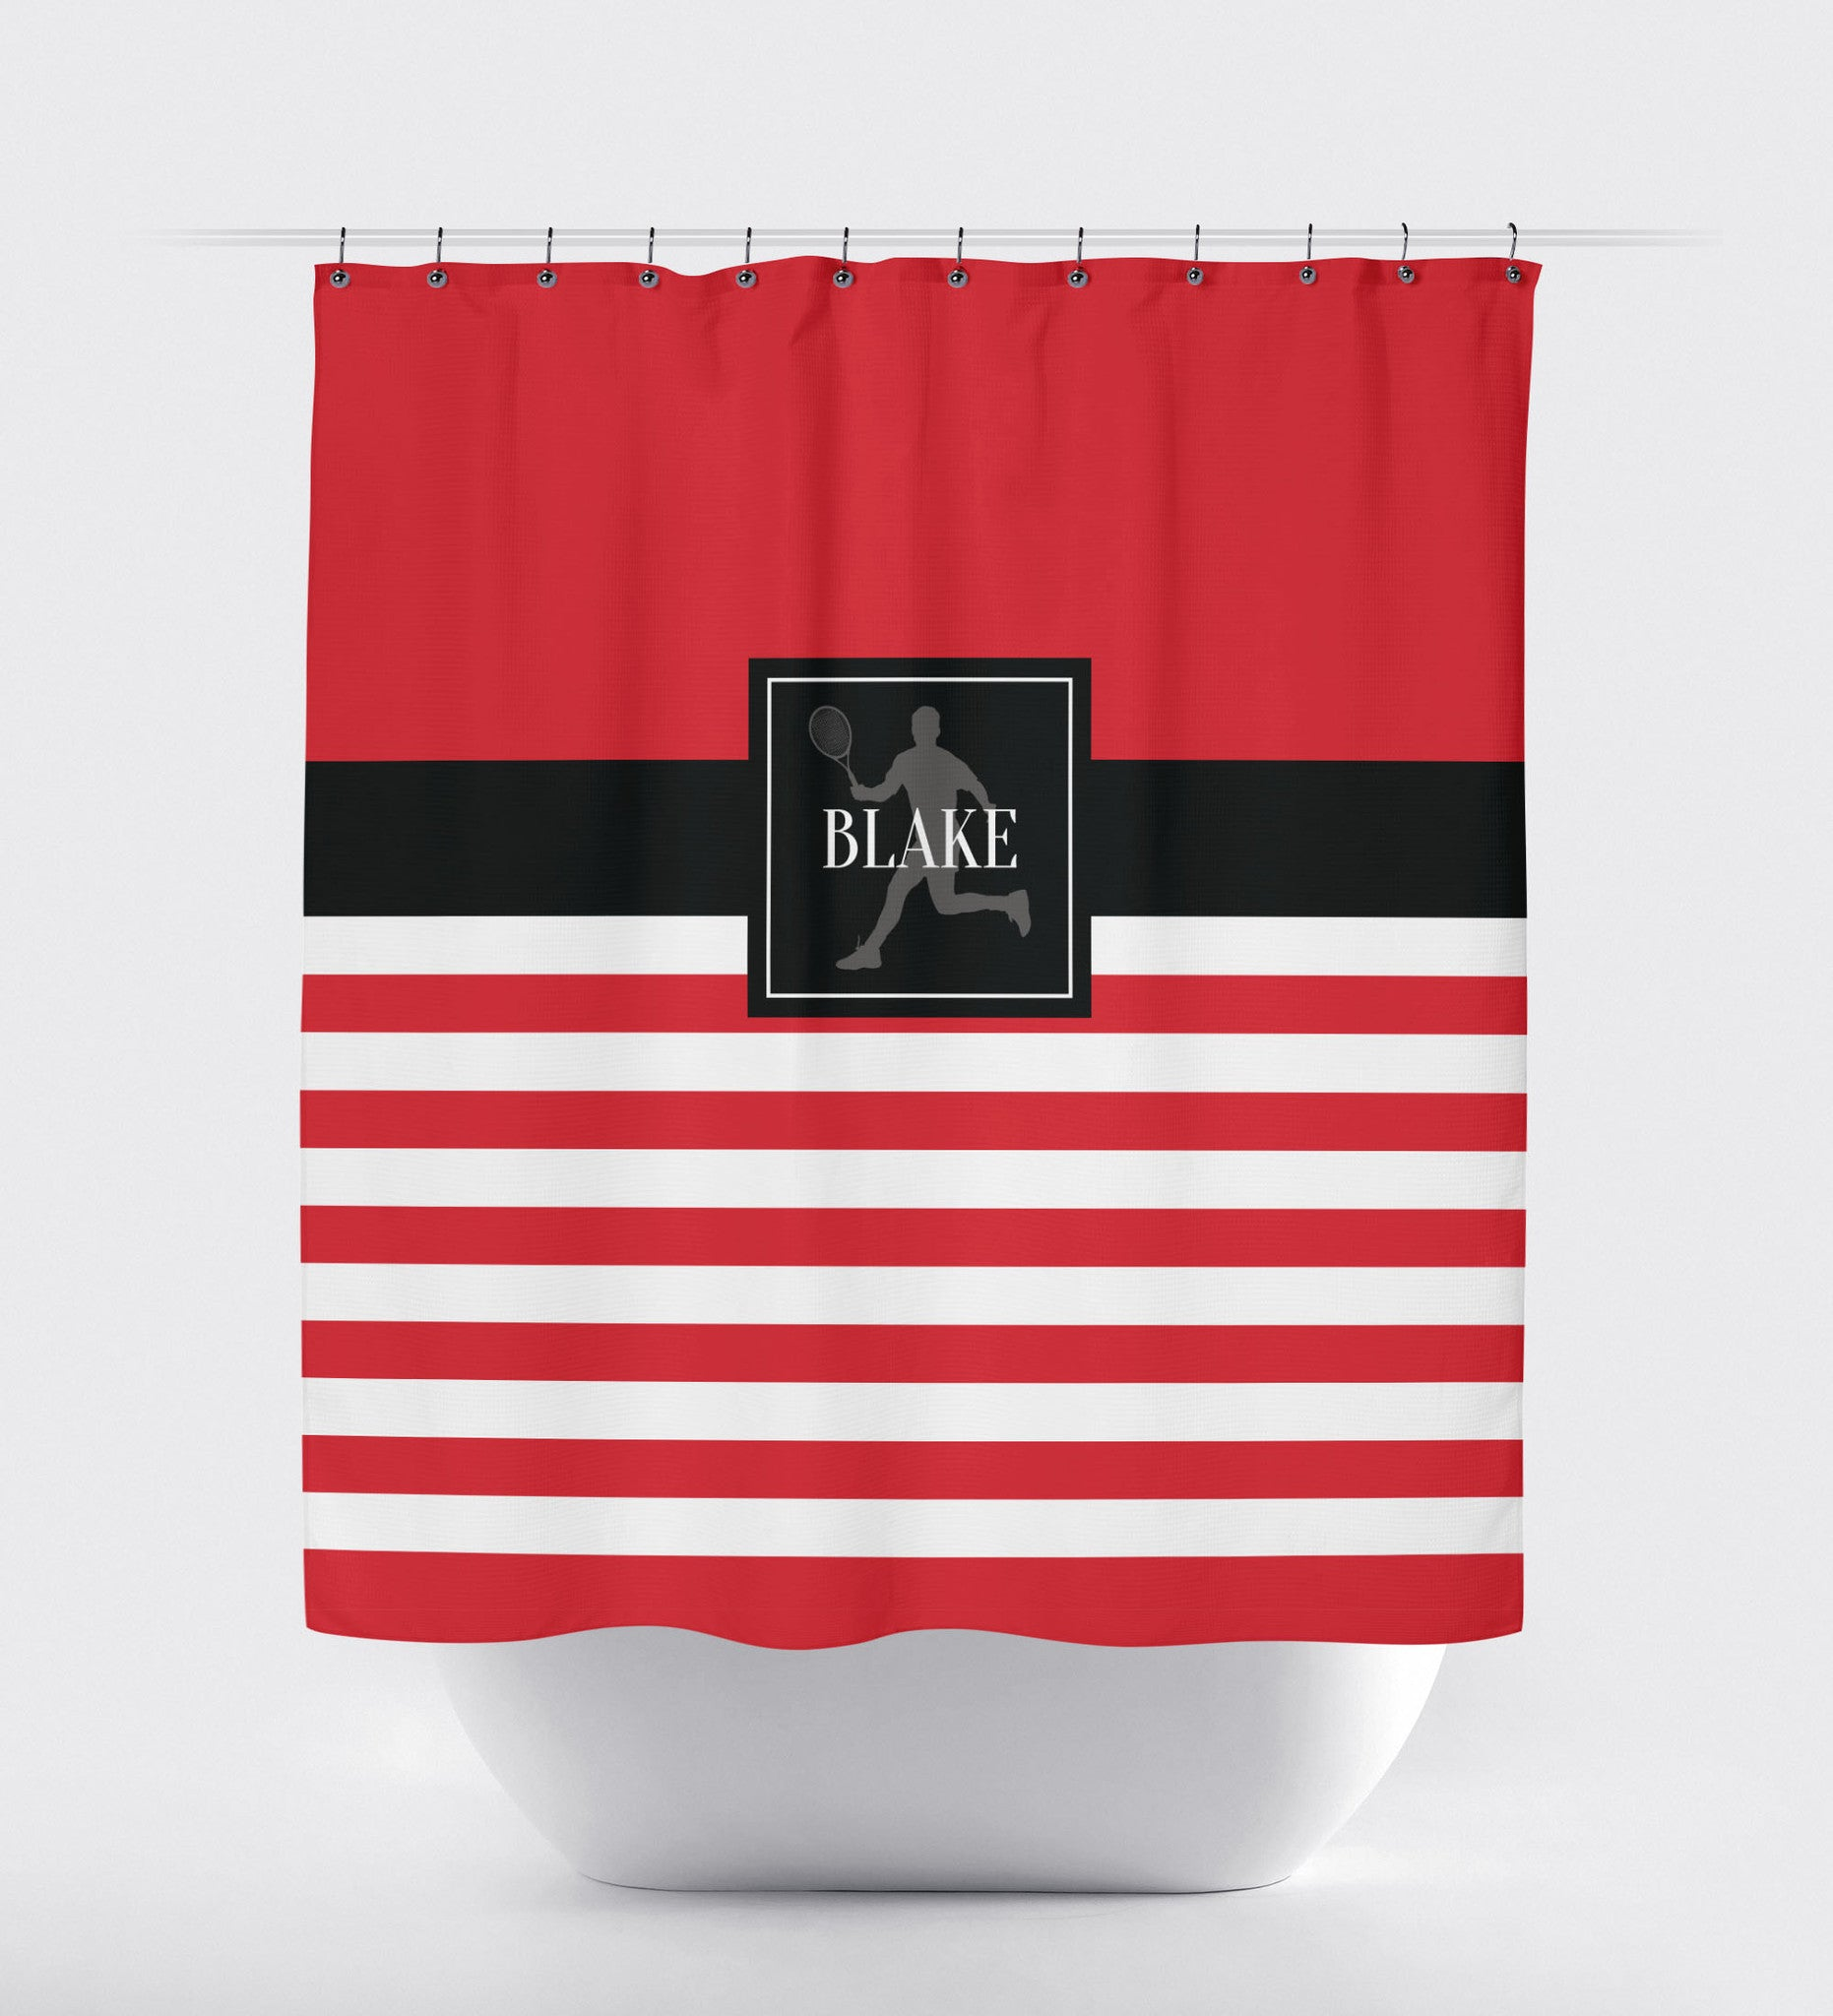 Black and white monogrammed shower curtain -  Personalized Tennis Shower Curtain Custom Rugby Striped Bathroom Decor Sports Gift For Boys